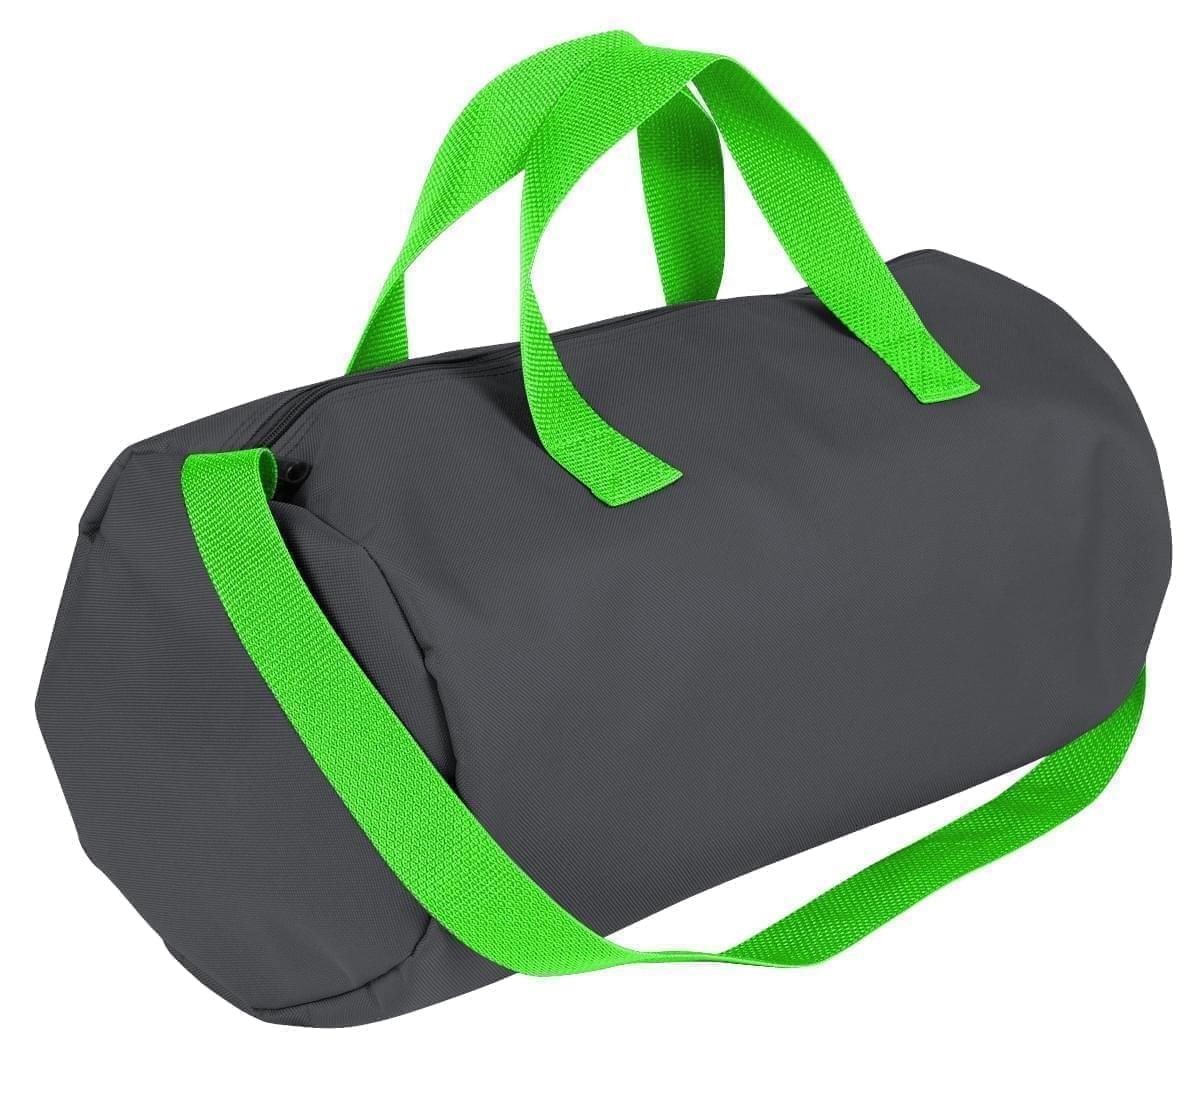 USA Made Nylon Poly Gym Roll Bags, Graphite-Lime, ROCX31AARY